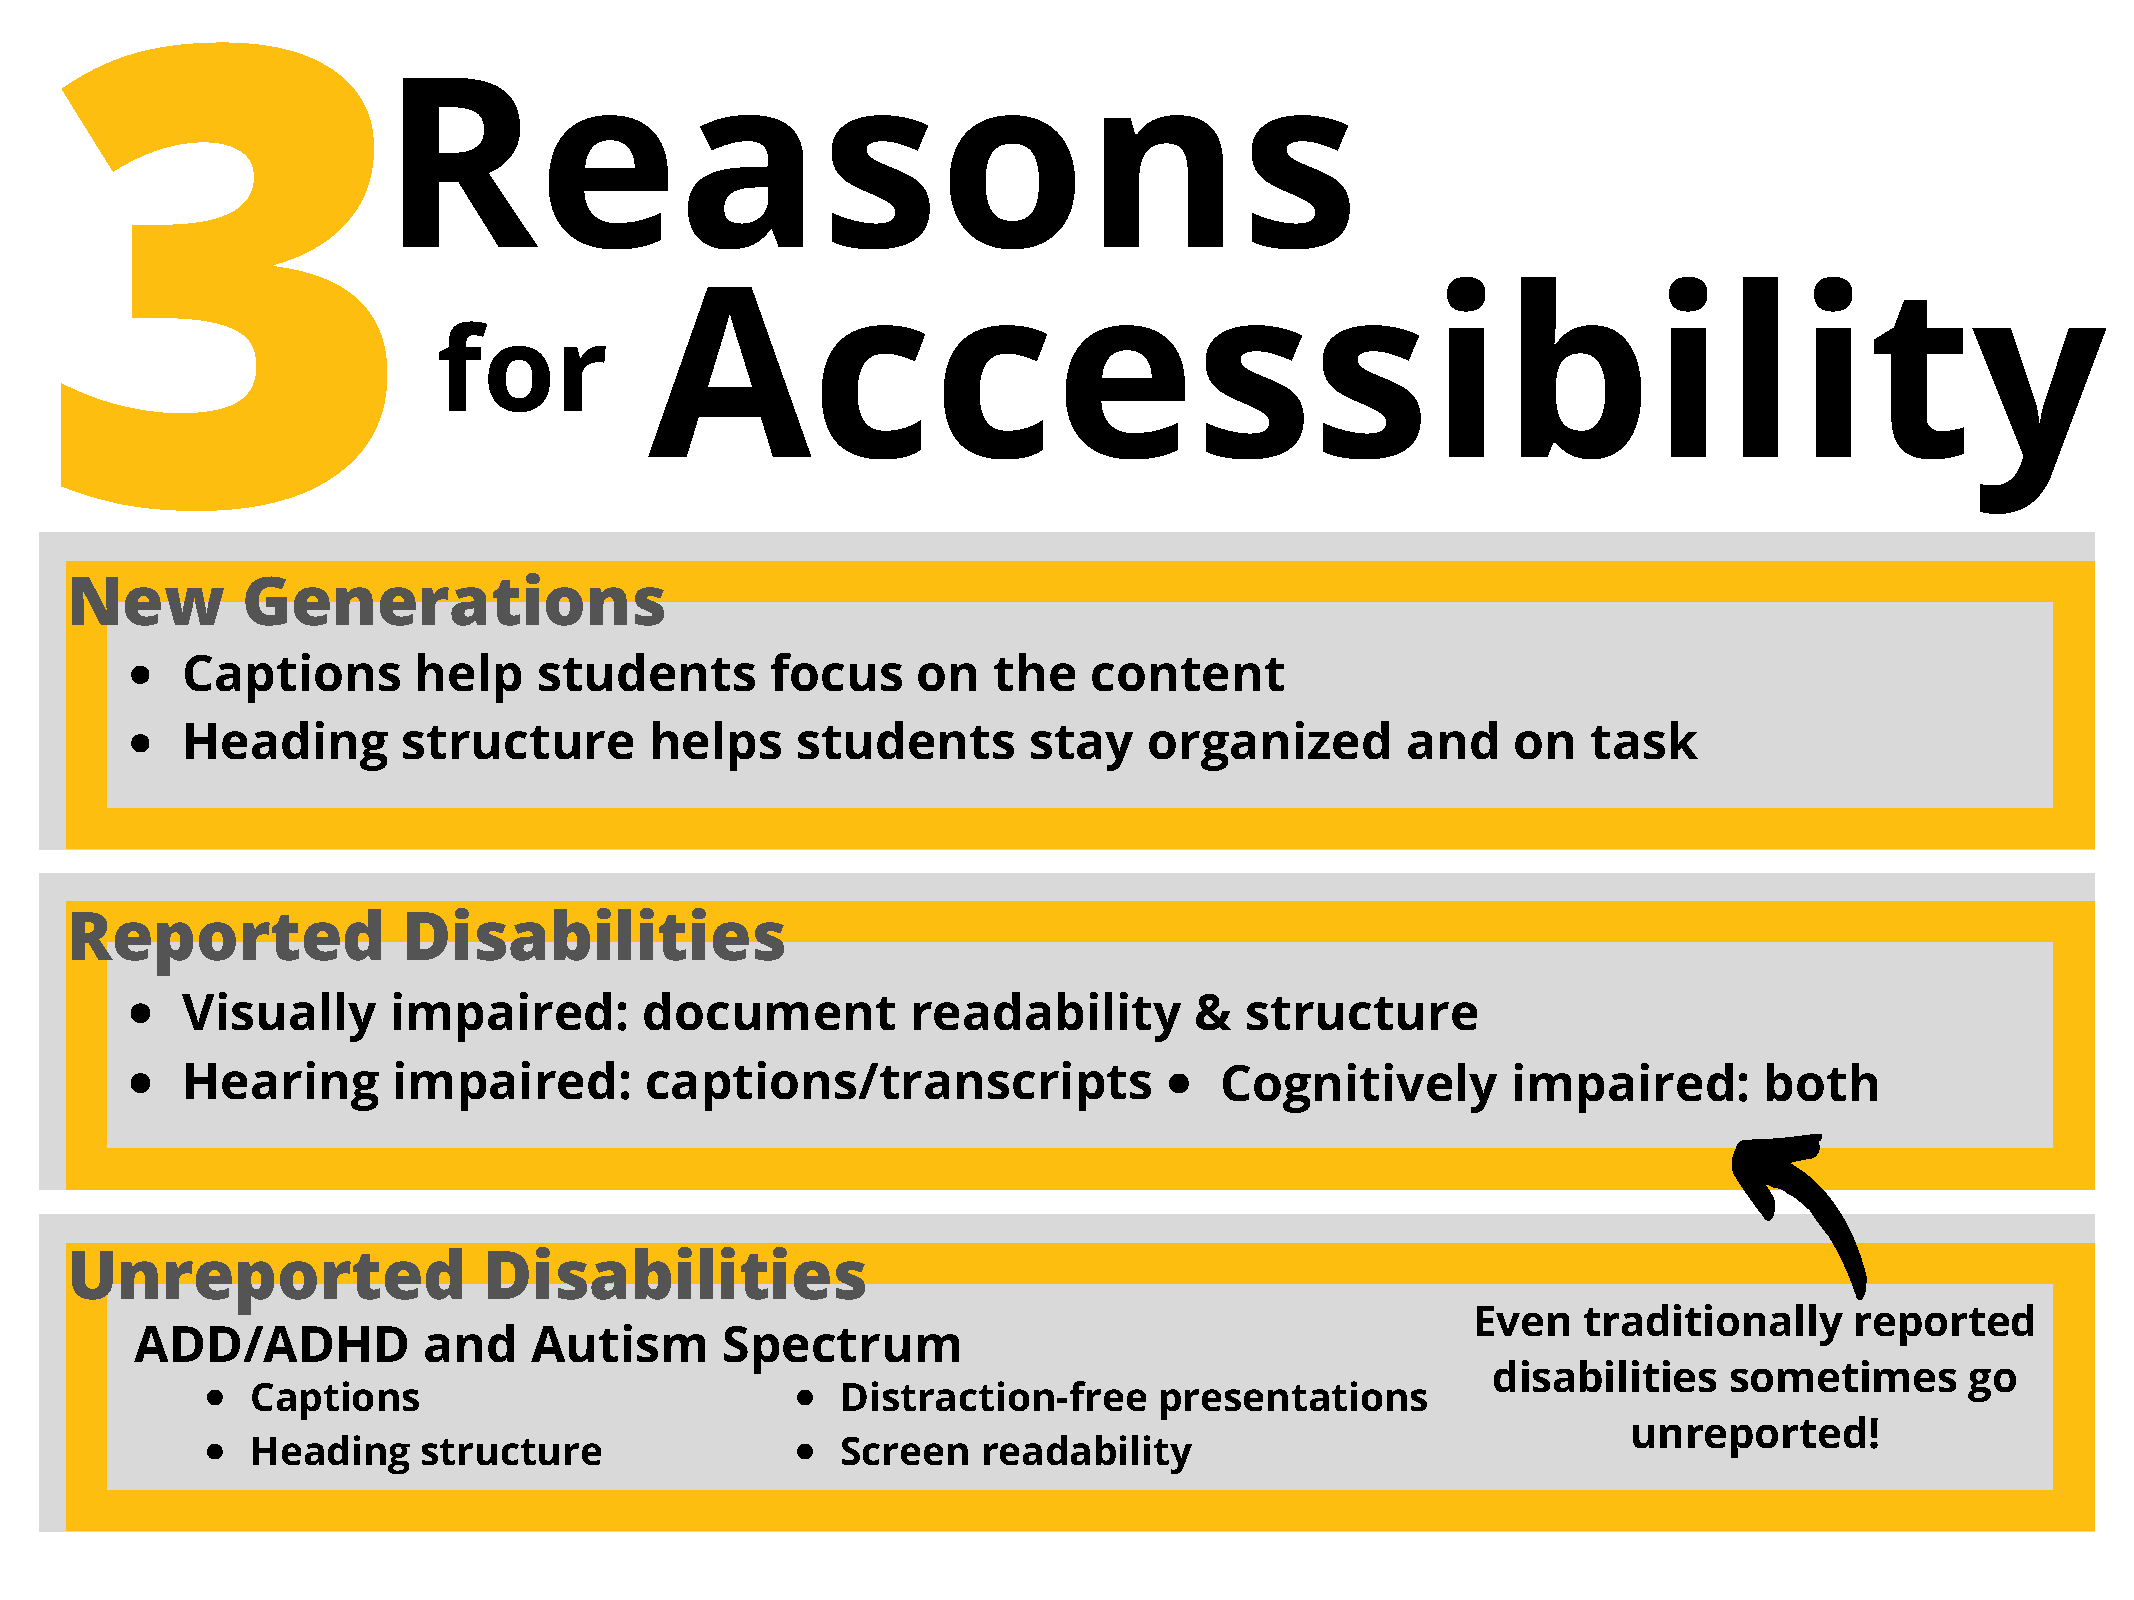 3 Reasons for Accessibility